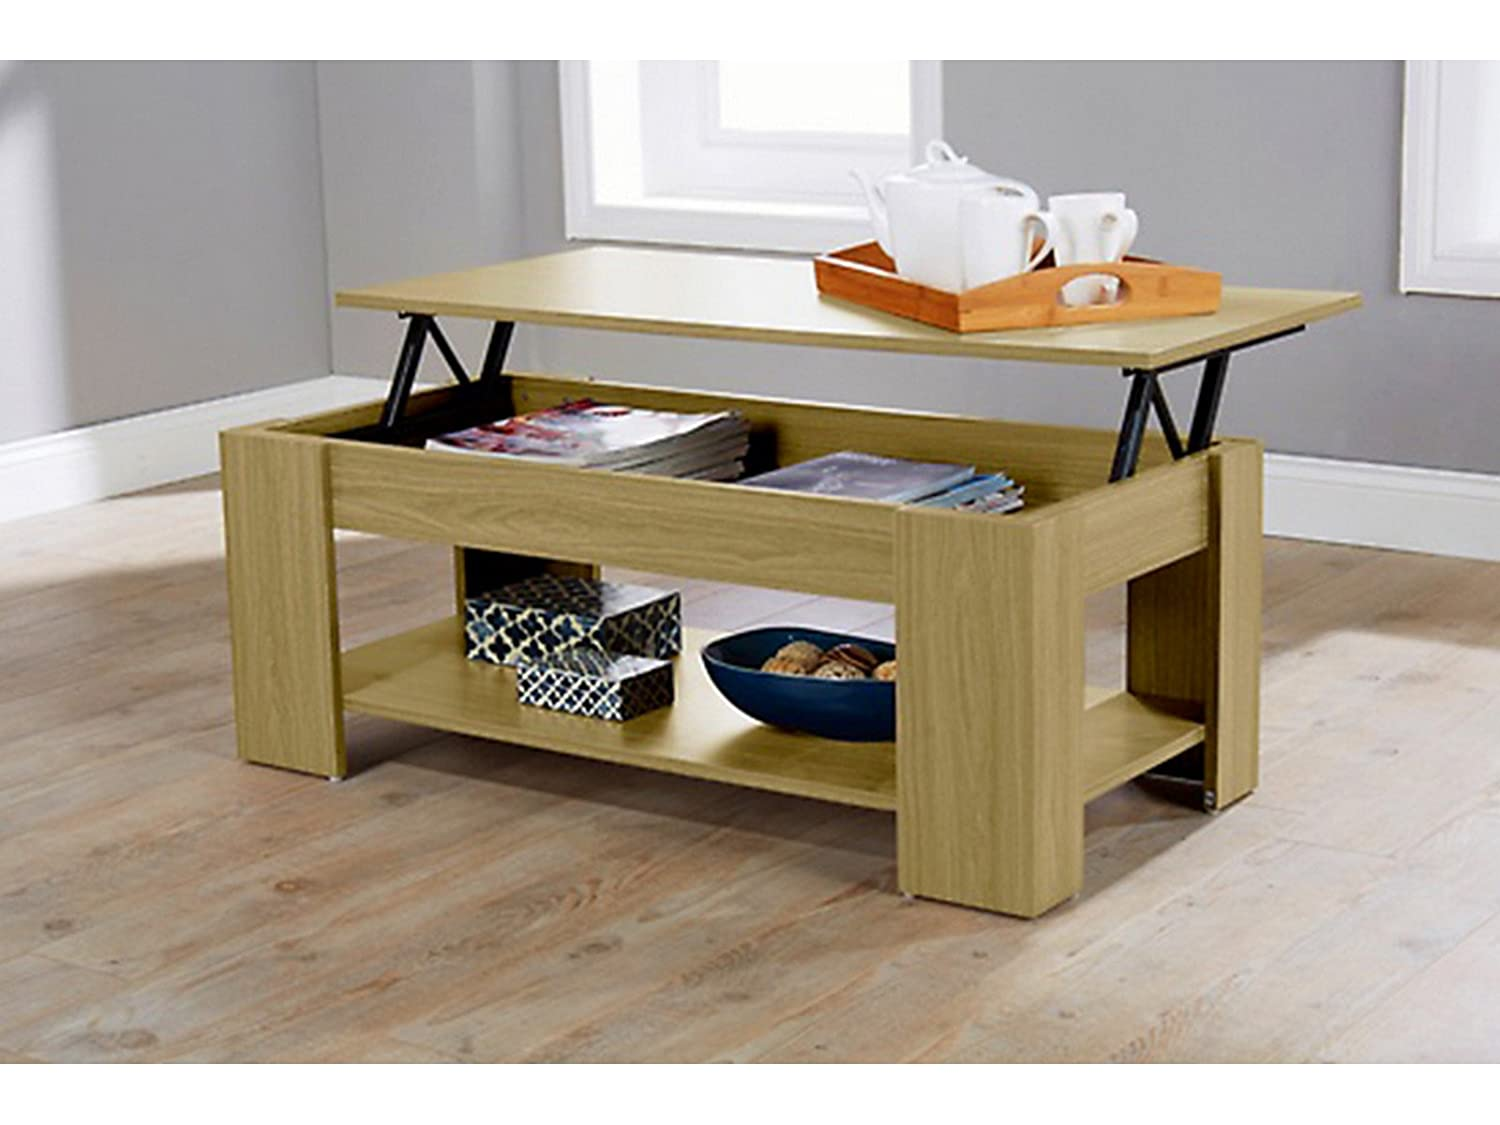 Caspian lift top coffee table with storage shelf espresso caspian lift top coffee table with storage shelf espresso walnut oak white espresso by right deals uk amazon kitchen home geotapseo Image collections